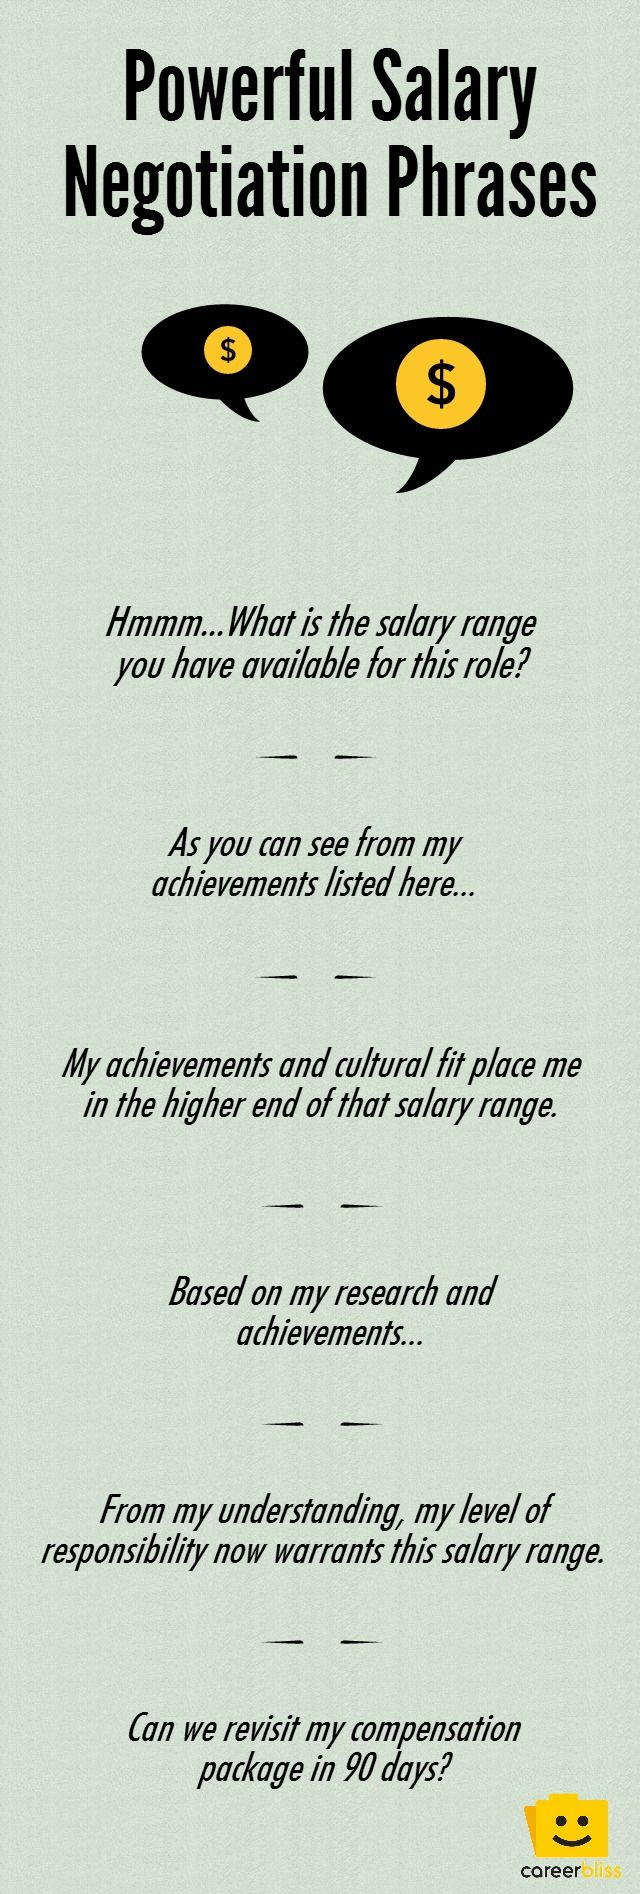 Salary Negotiation: 3 Key Phrases to Get What You Want